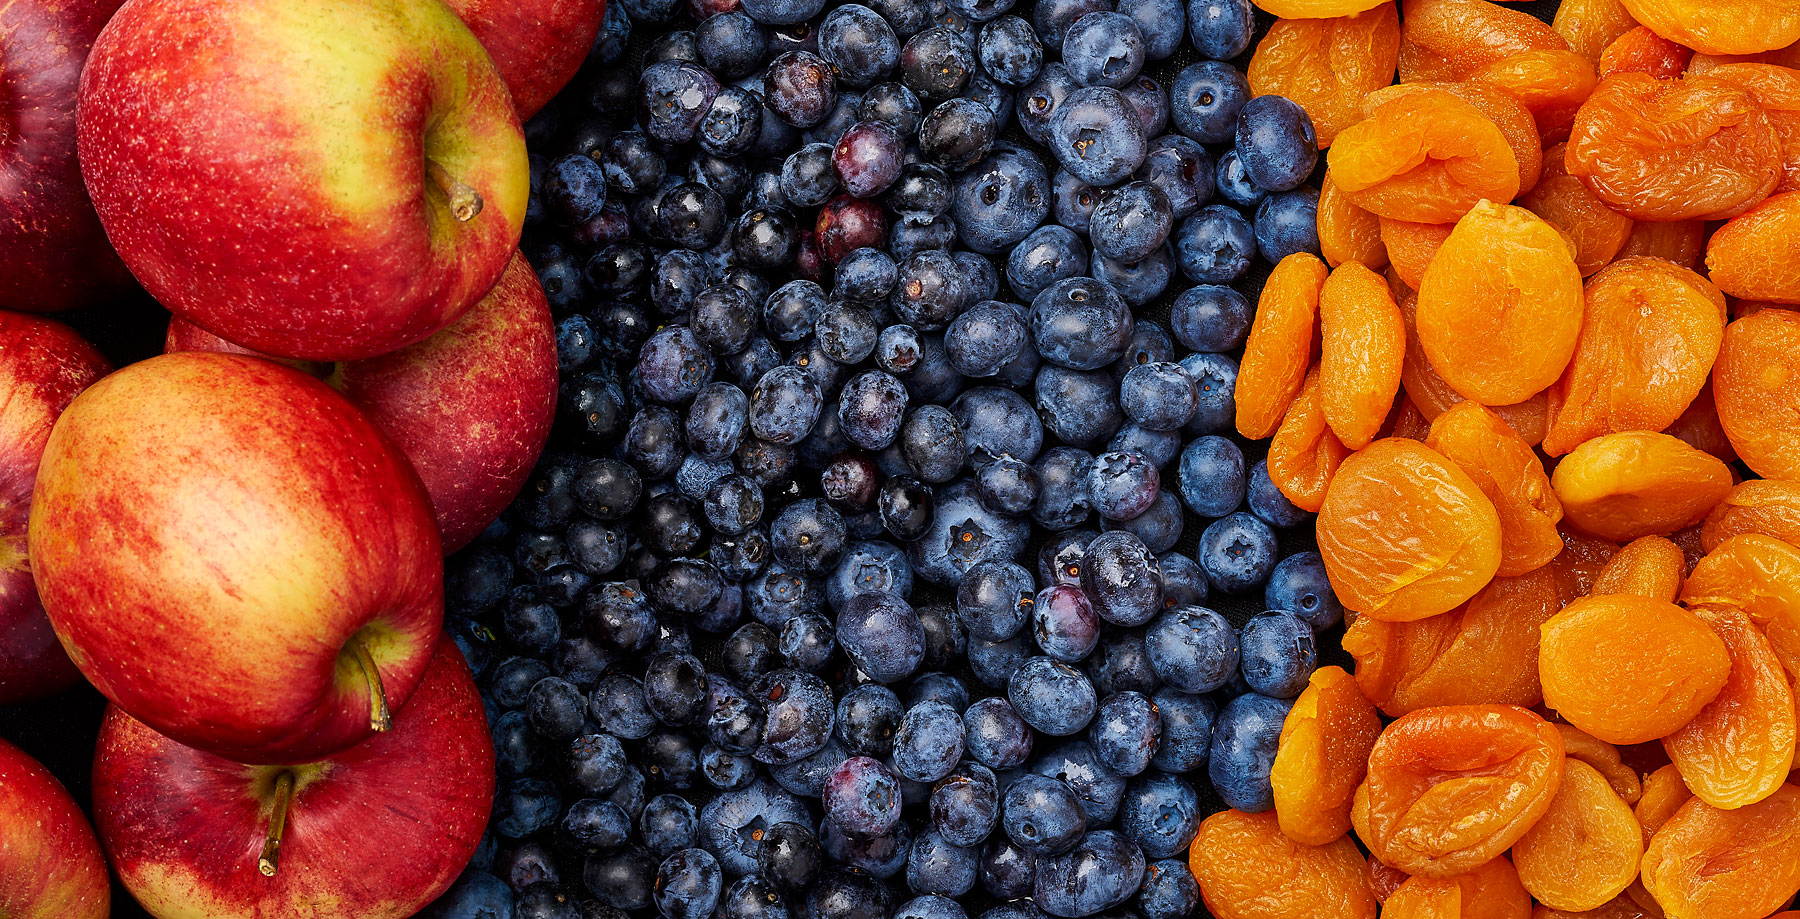 Apples, blueberries and apricot